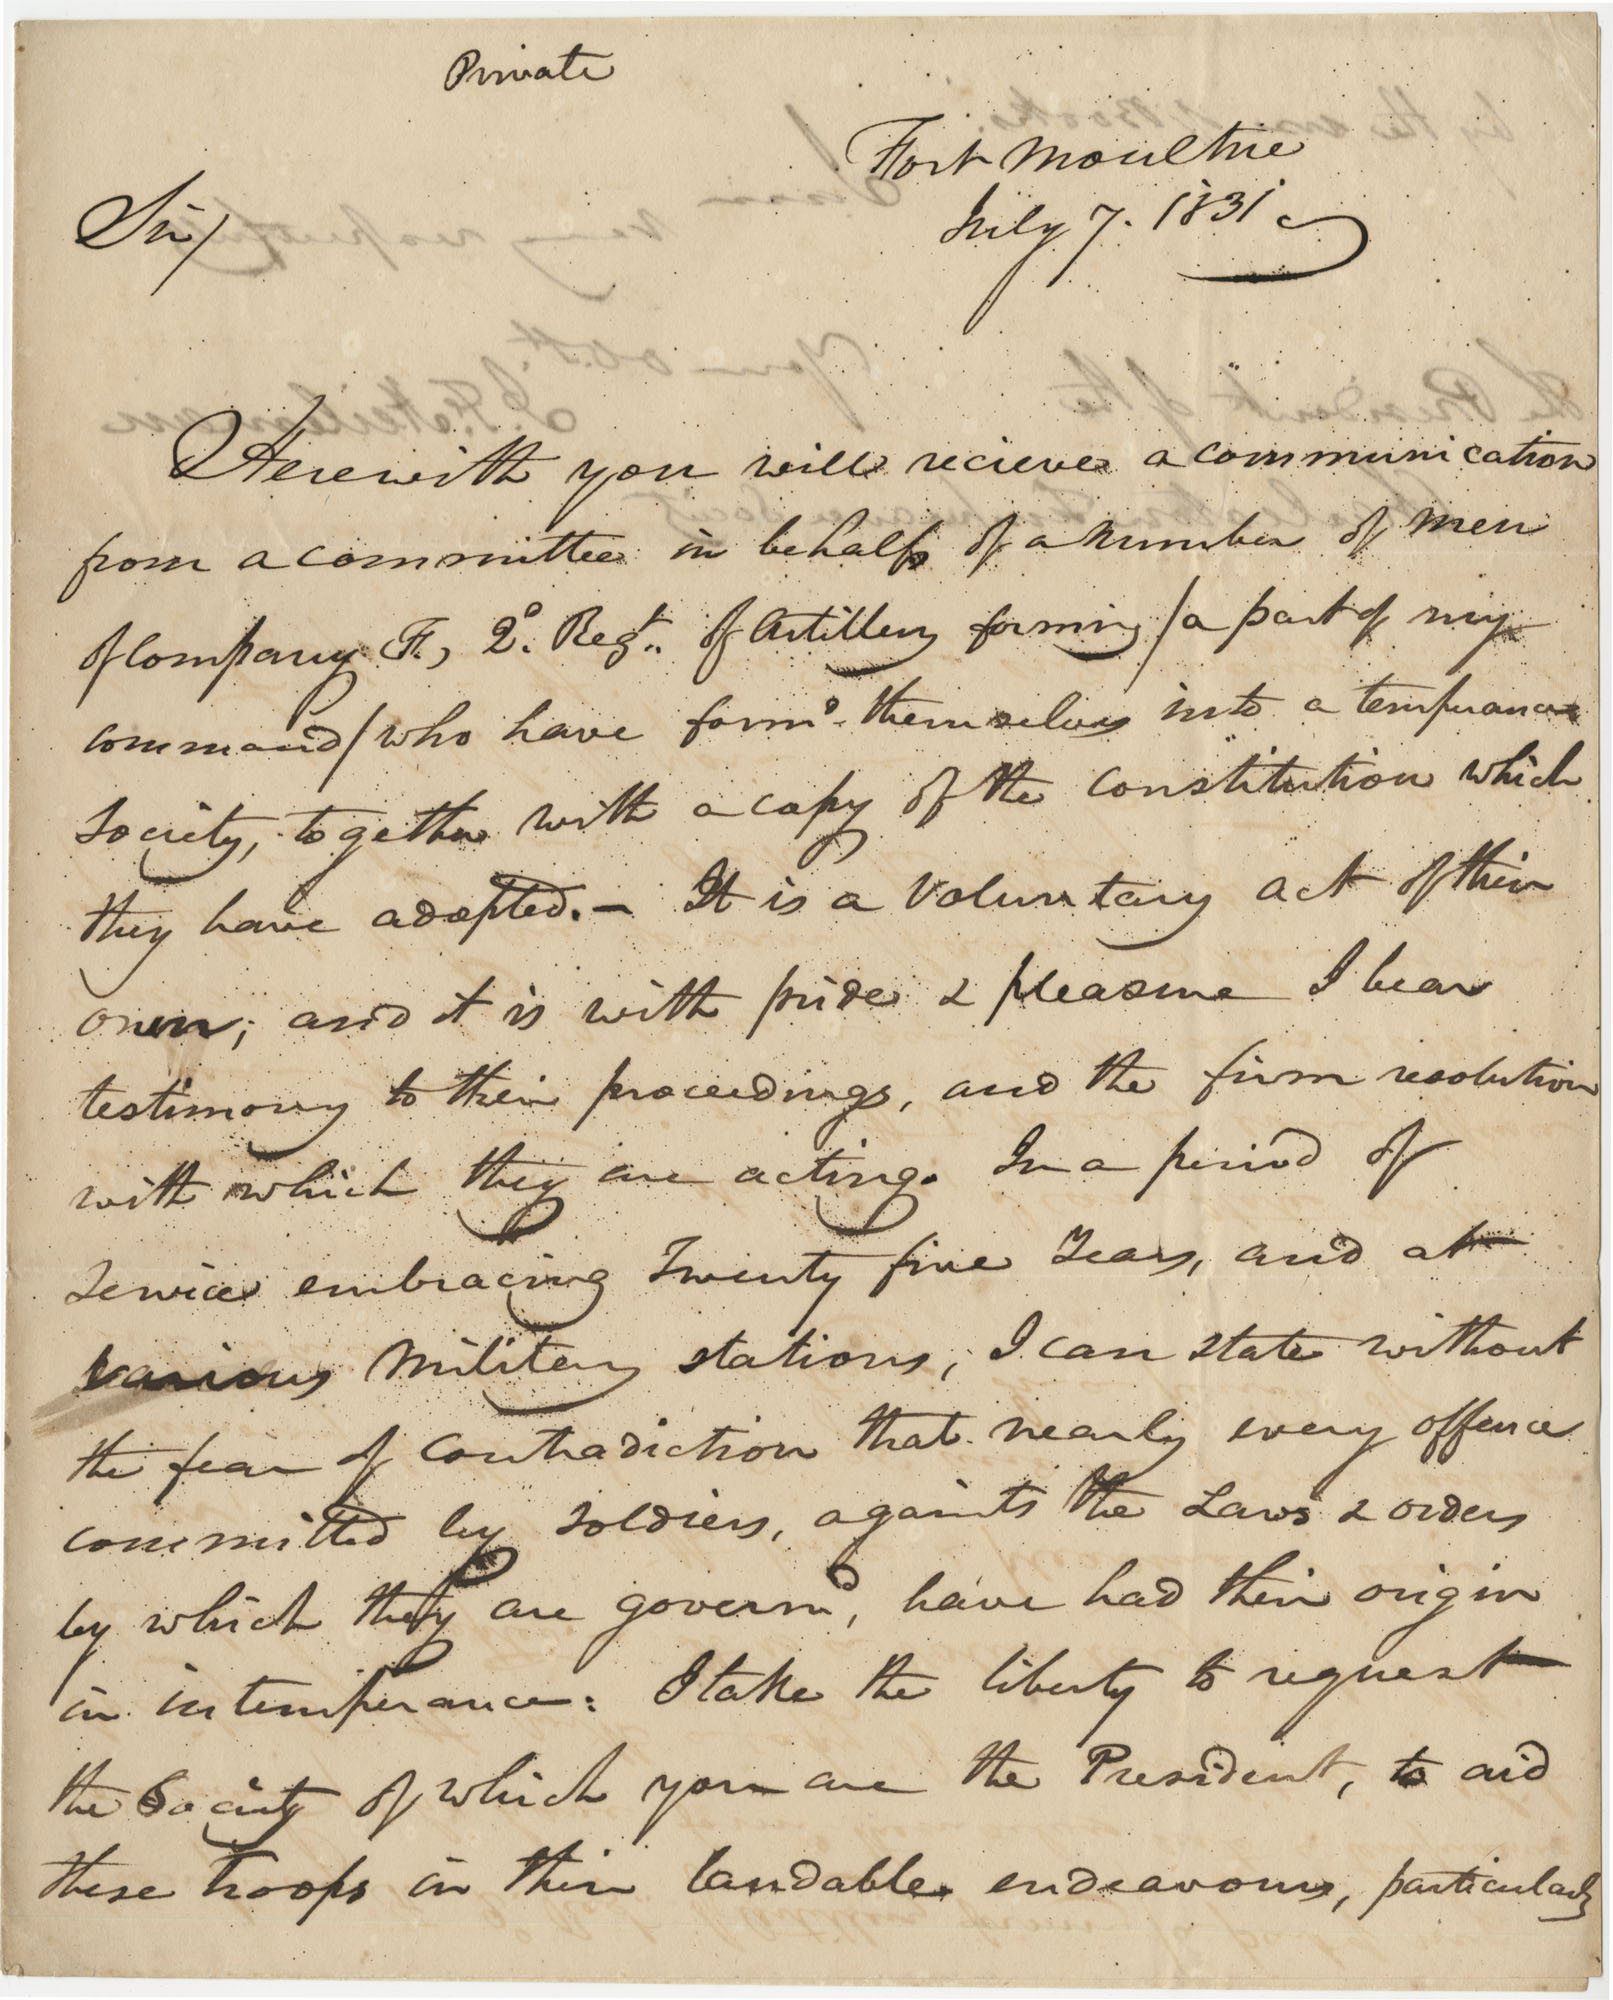 Letter from J.F. Heilman, President of the Charleston Temperance Society, to Thomas S. Grimke, July 7, 1831